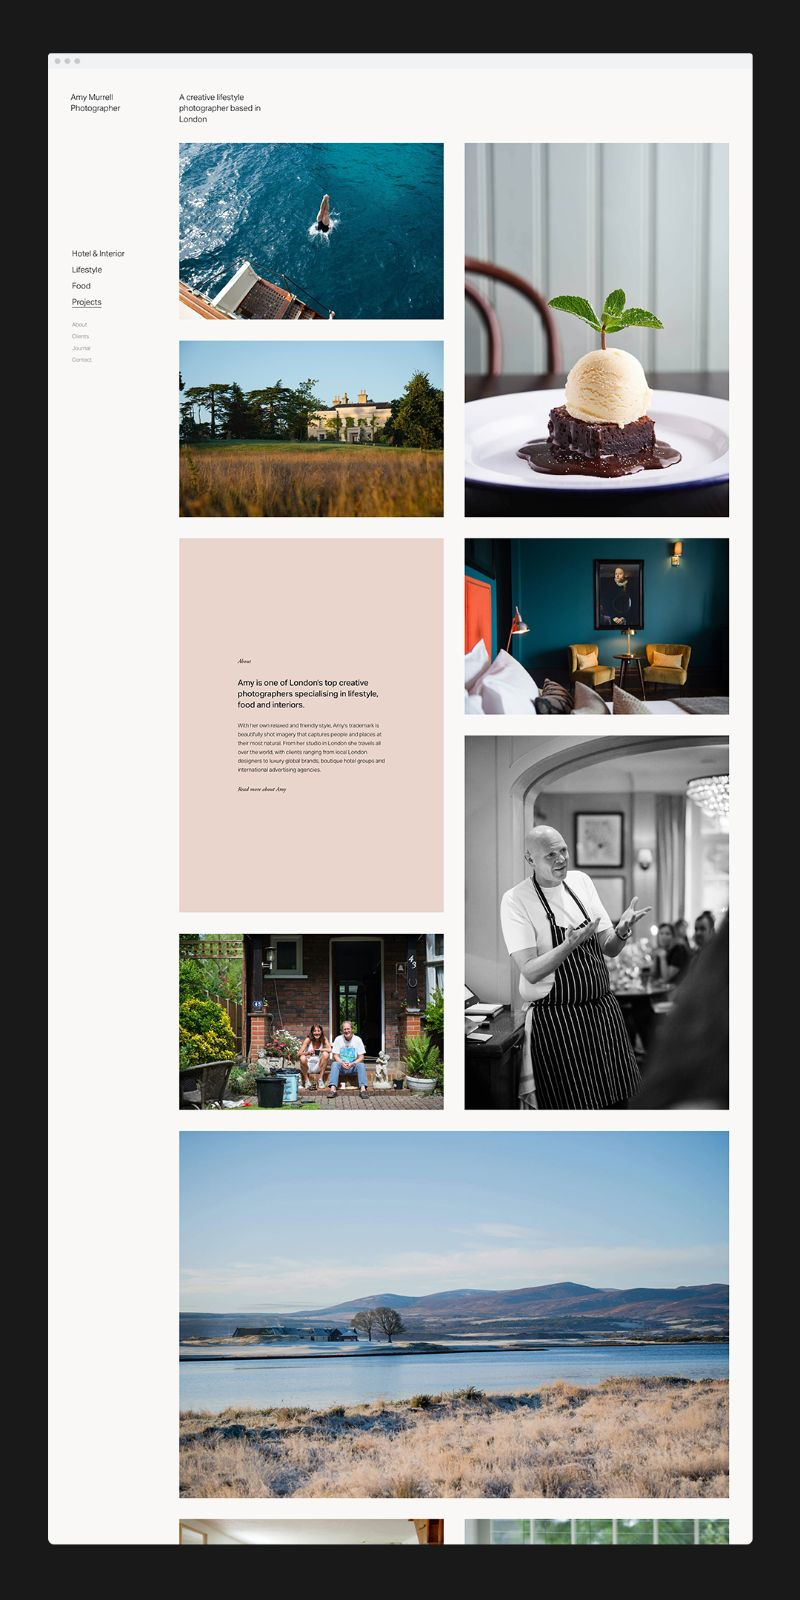 Amy Murrell - How to make a photographers portfolio website